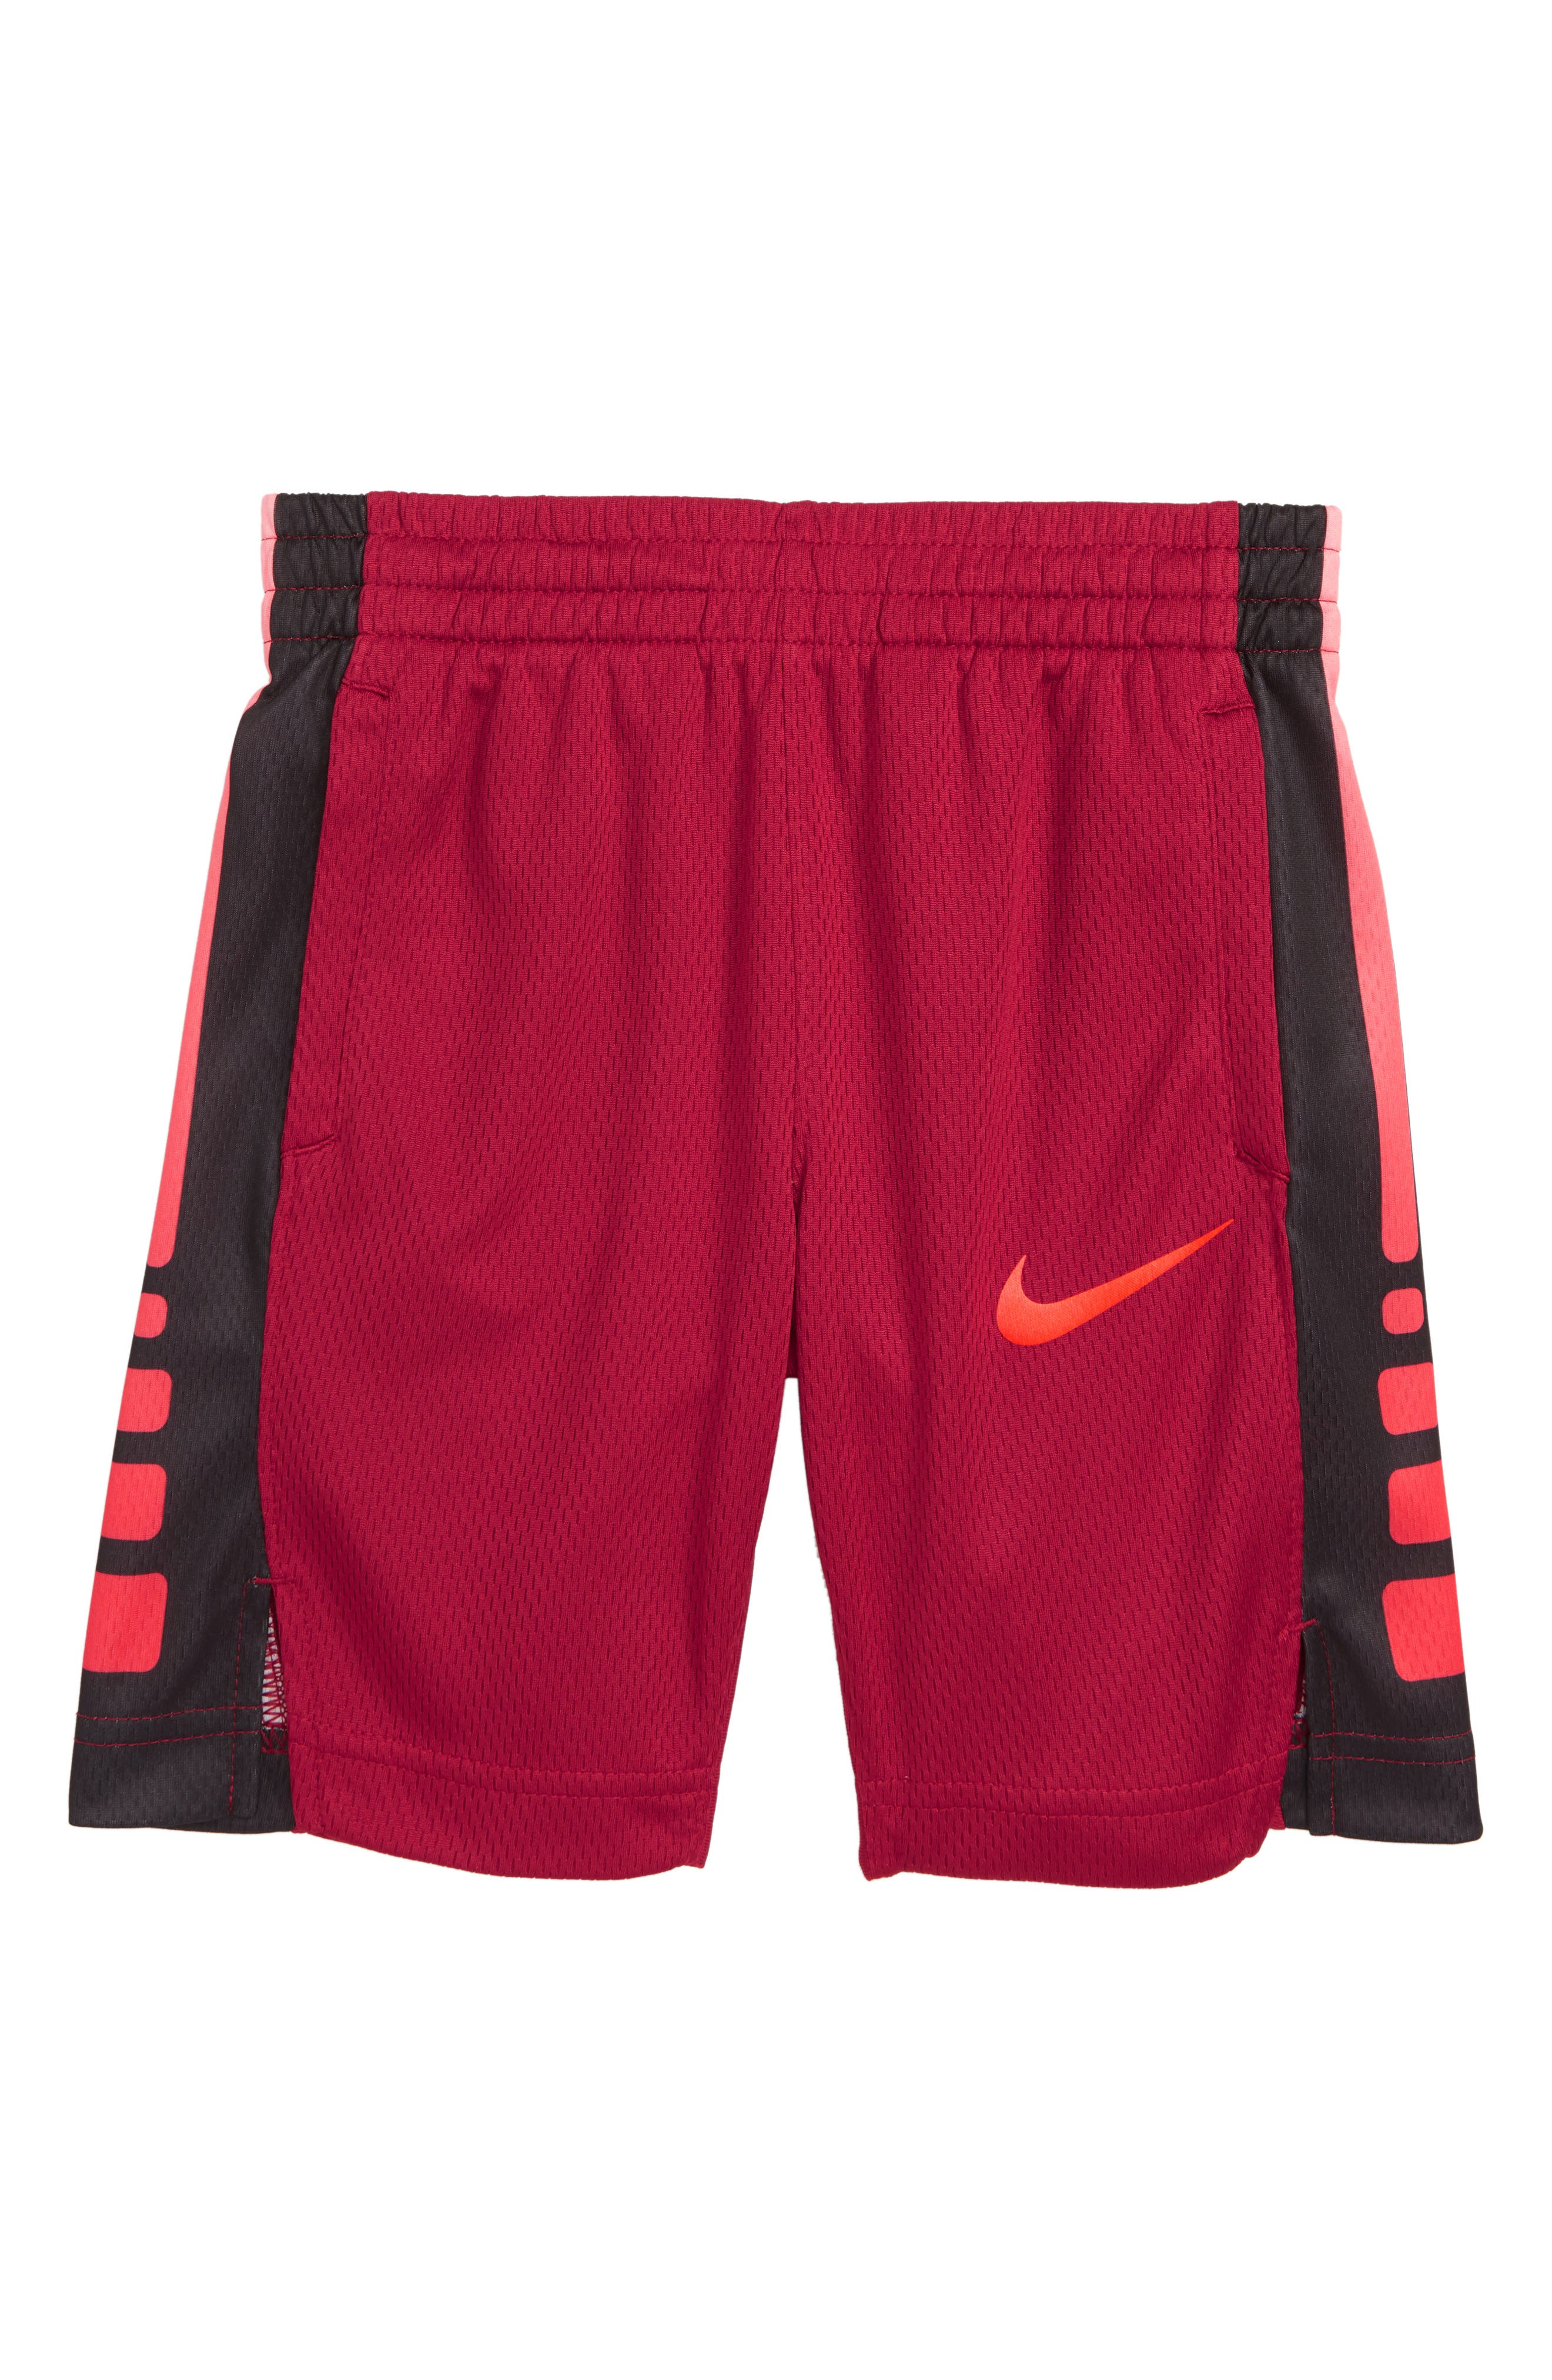 Elite Stripe Shorts,                         Main,                         color, RED CRUSH